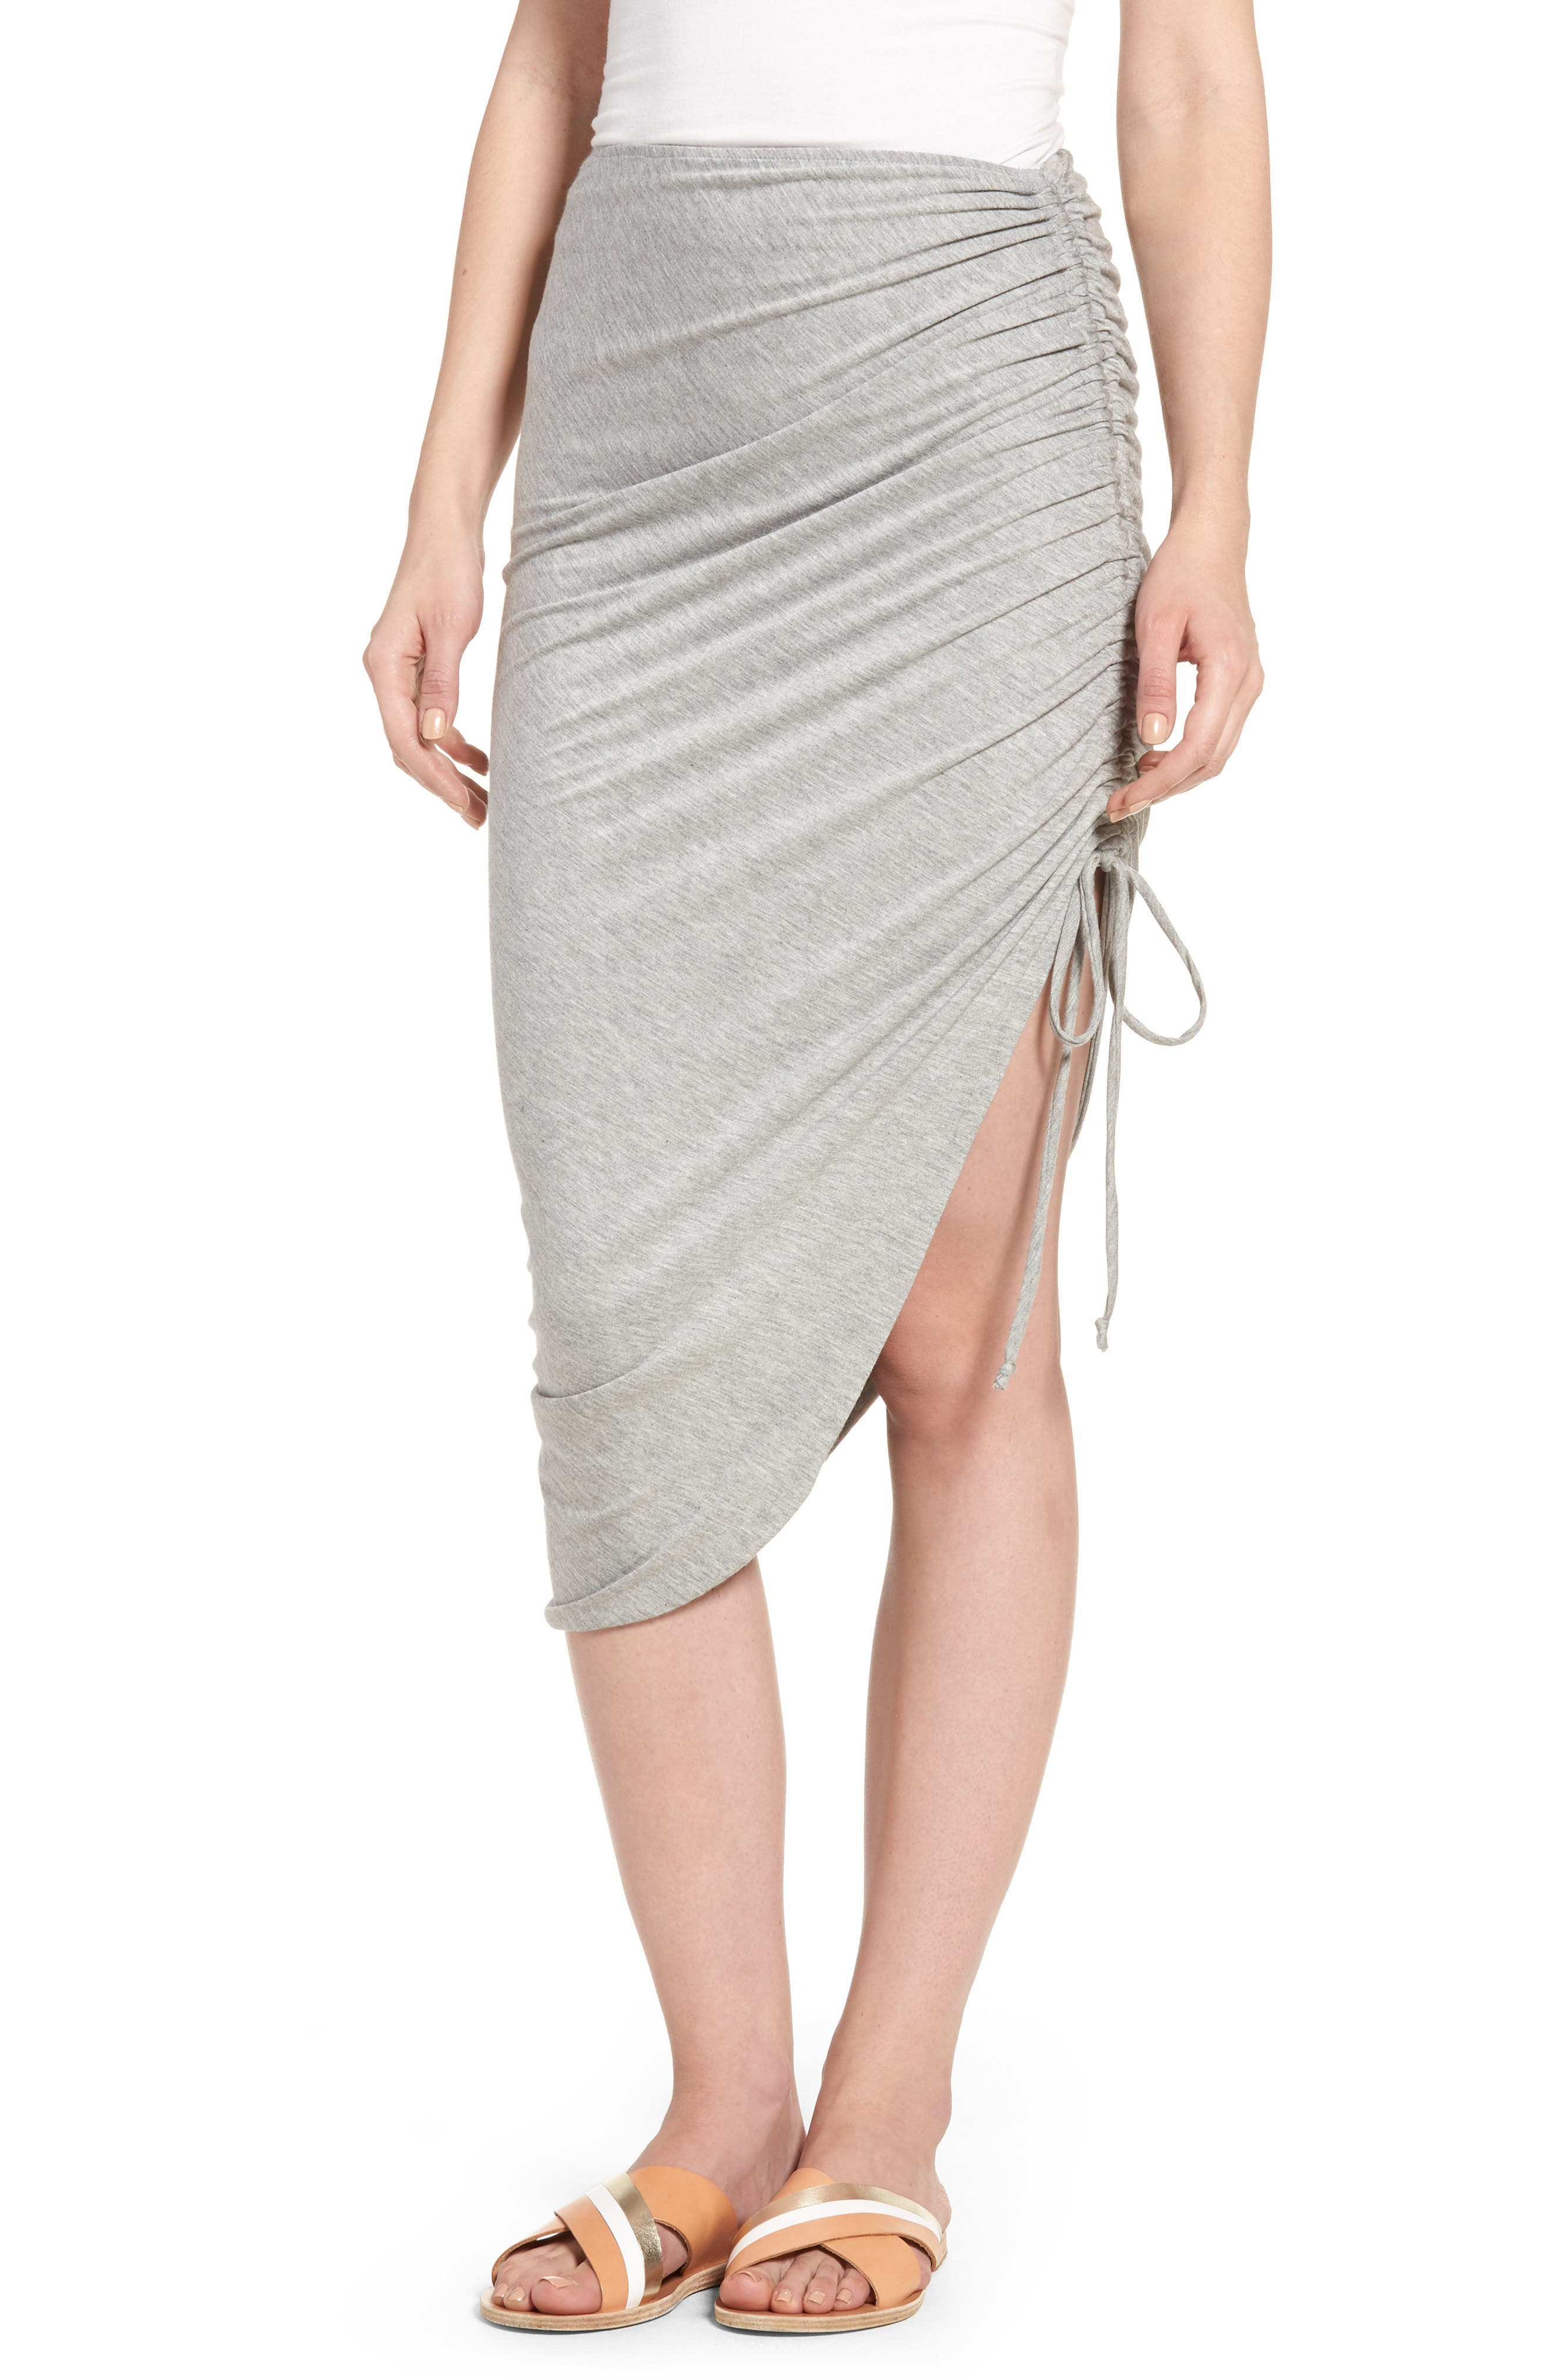 Delacy Zoe Ruched Knit Skirt